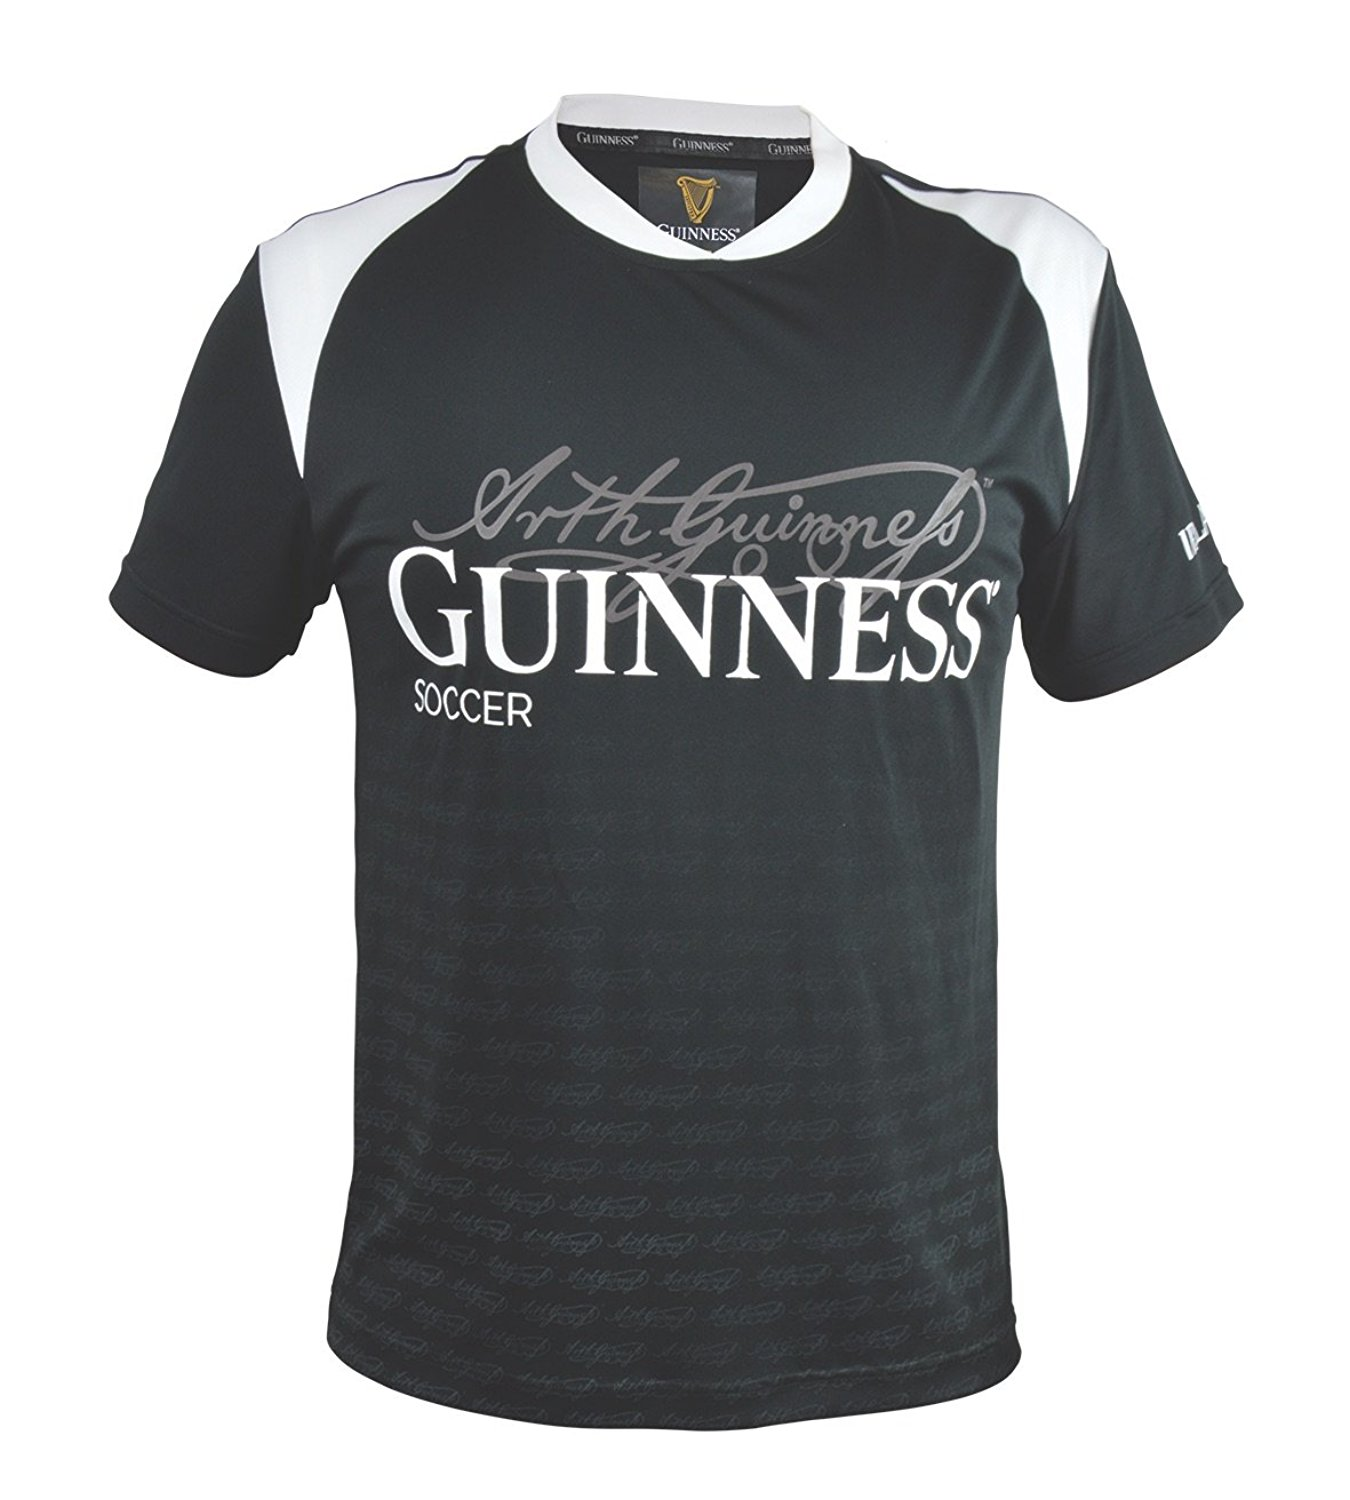 f0edd8c0254 Get Quotations · Black and White Sublimated Soccer Jersey with Arthur  Guinness Signature Sublimated Print